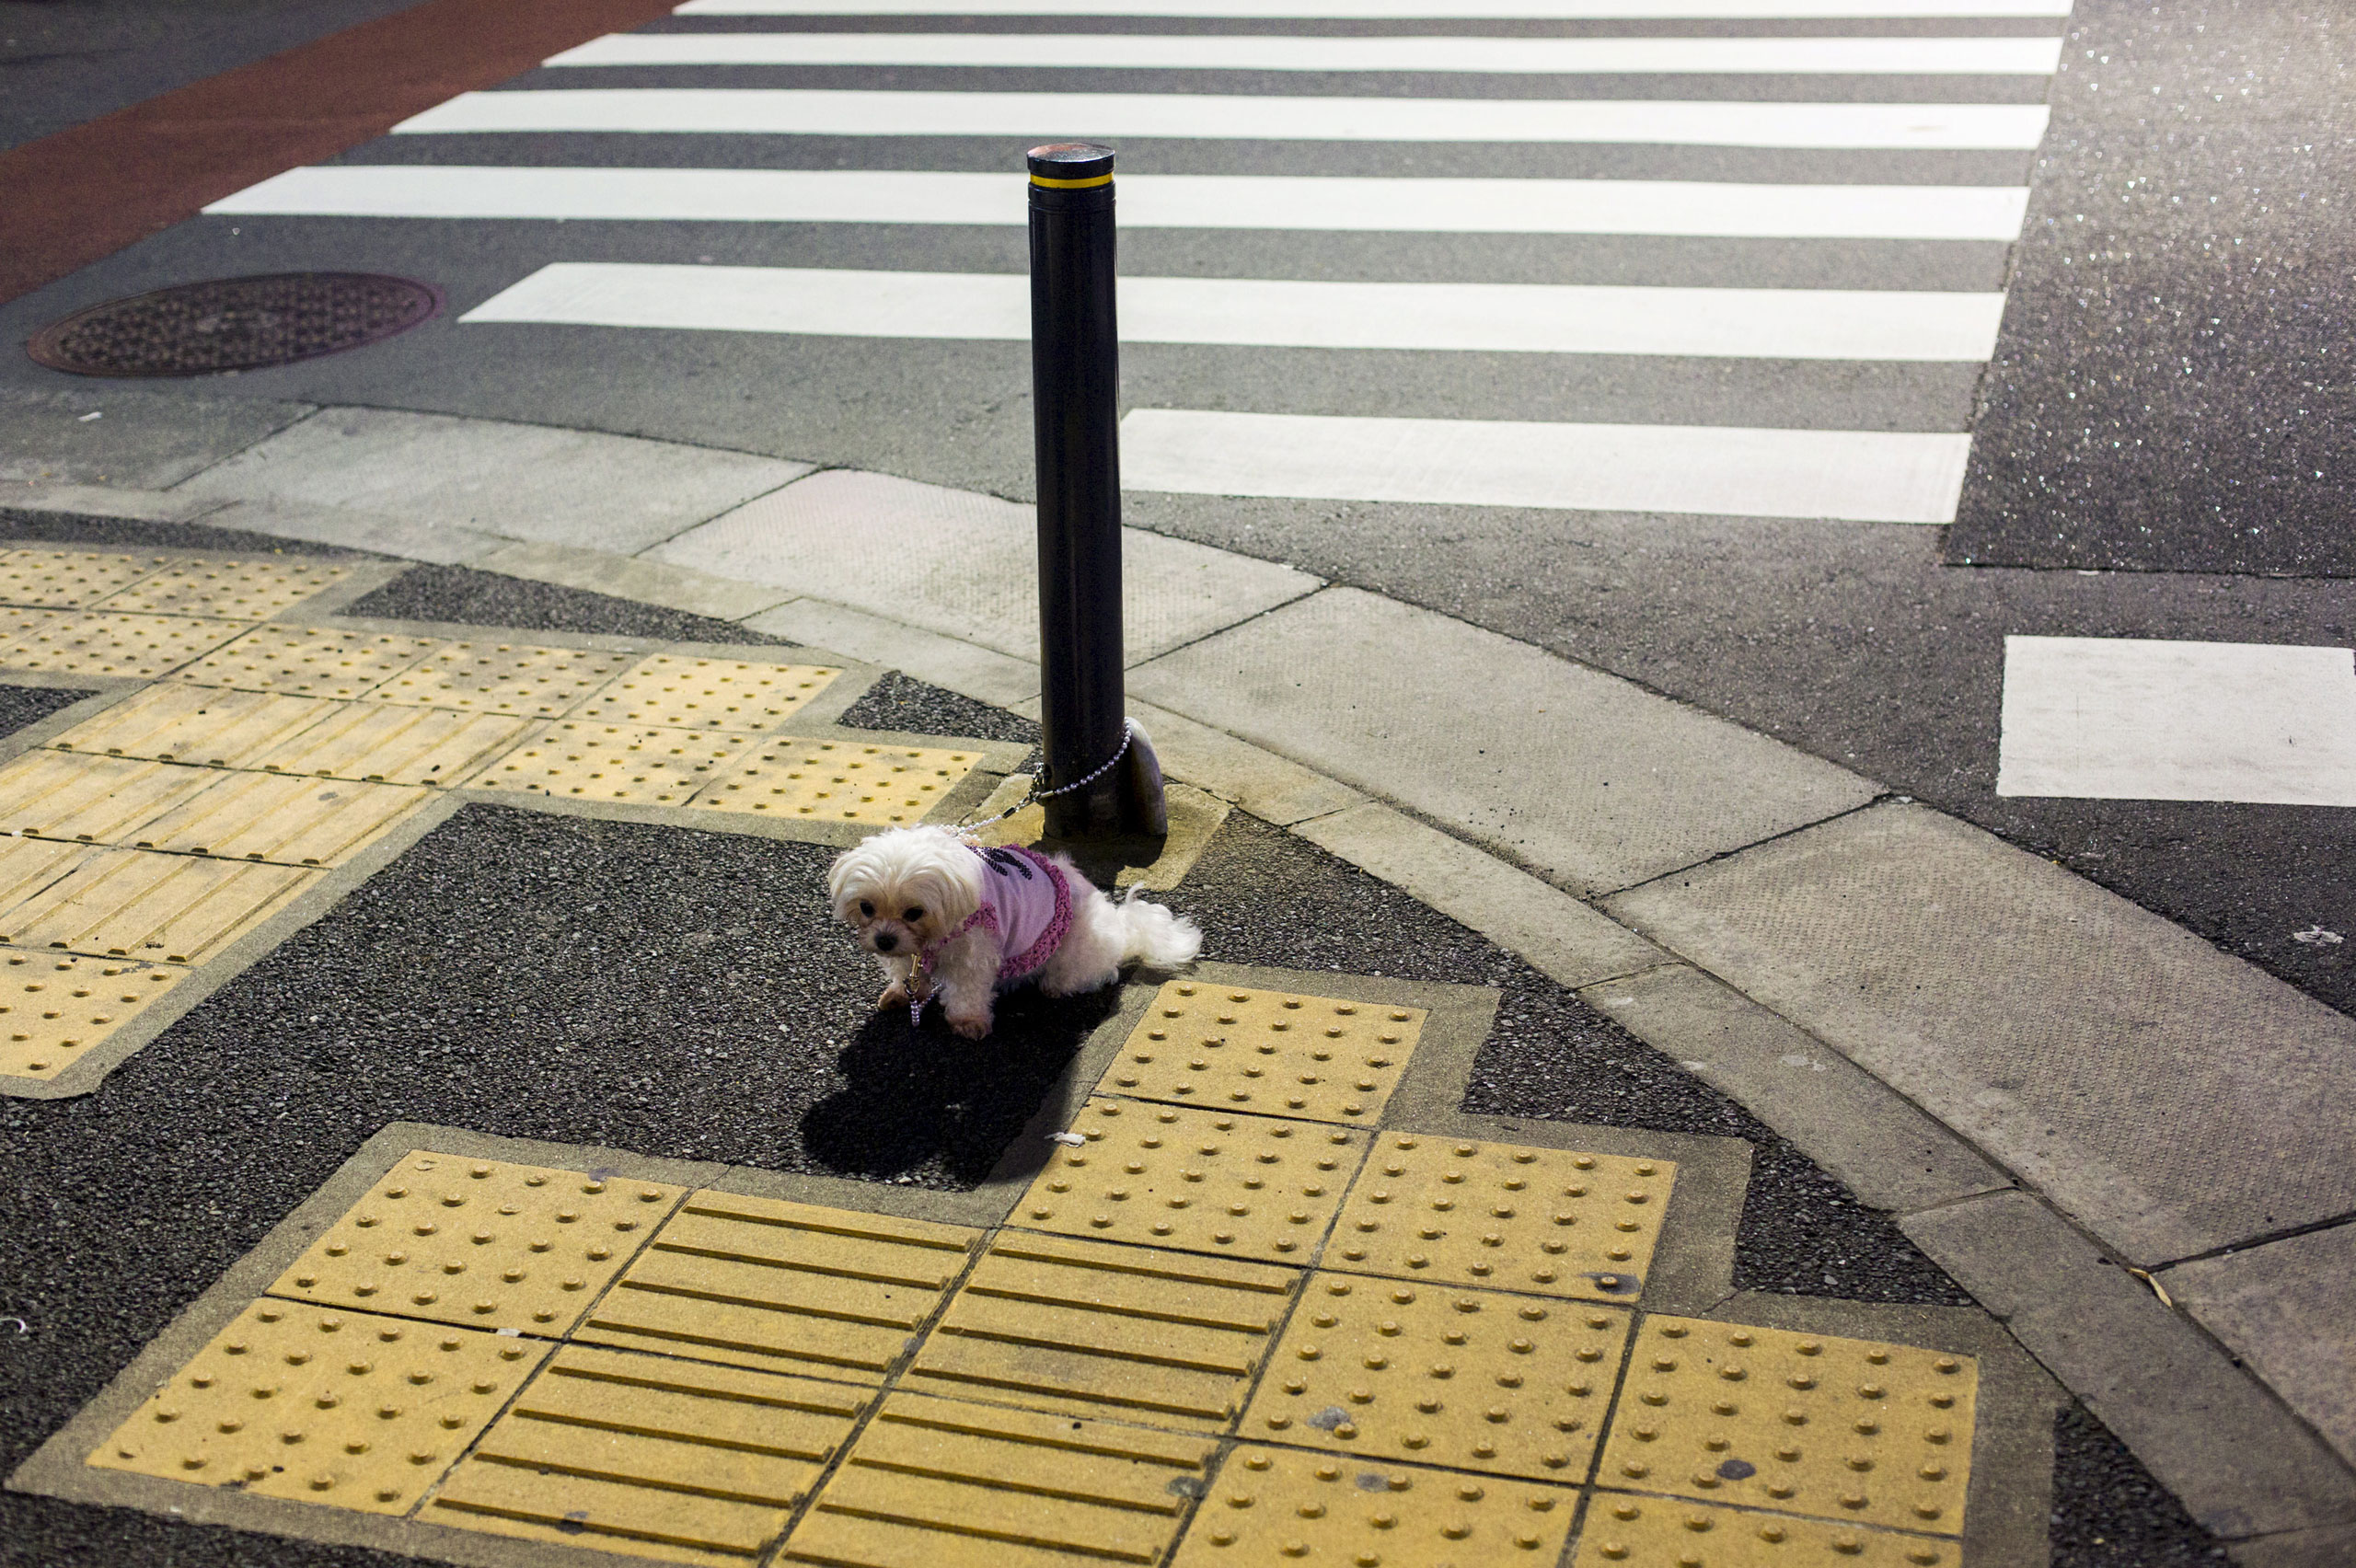 A pet dog is tied to a pole in an empty street as it waits for its owner outside of a shop in Tokyo, Japan, April 23, 2015.